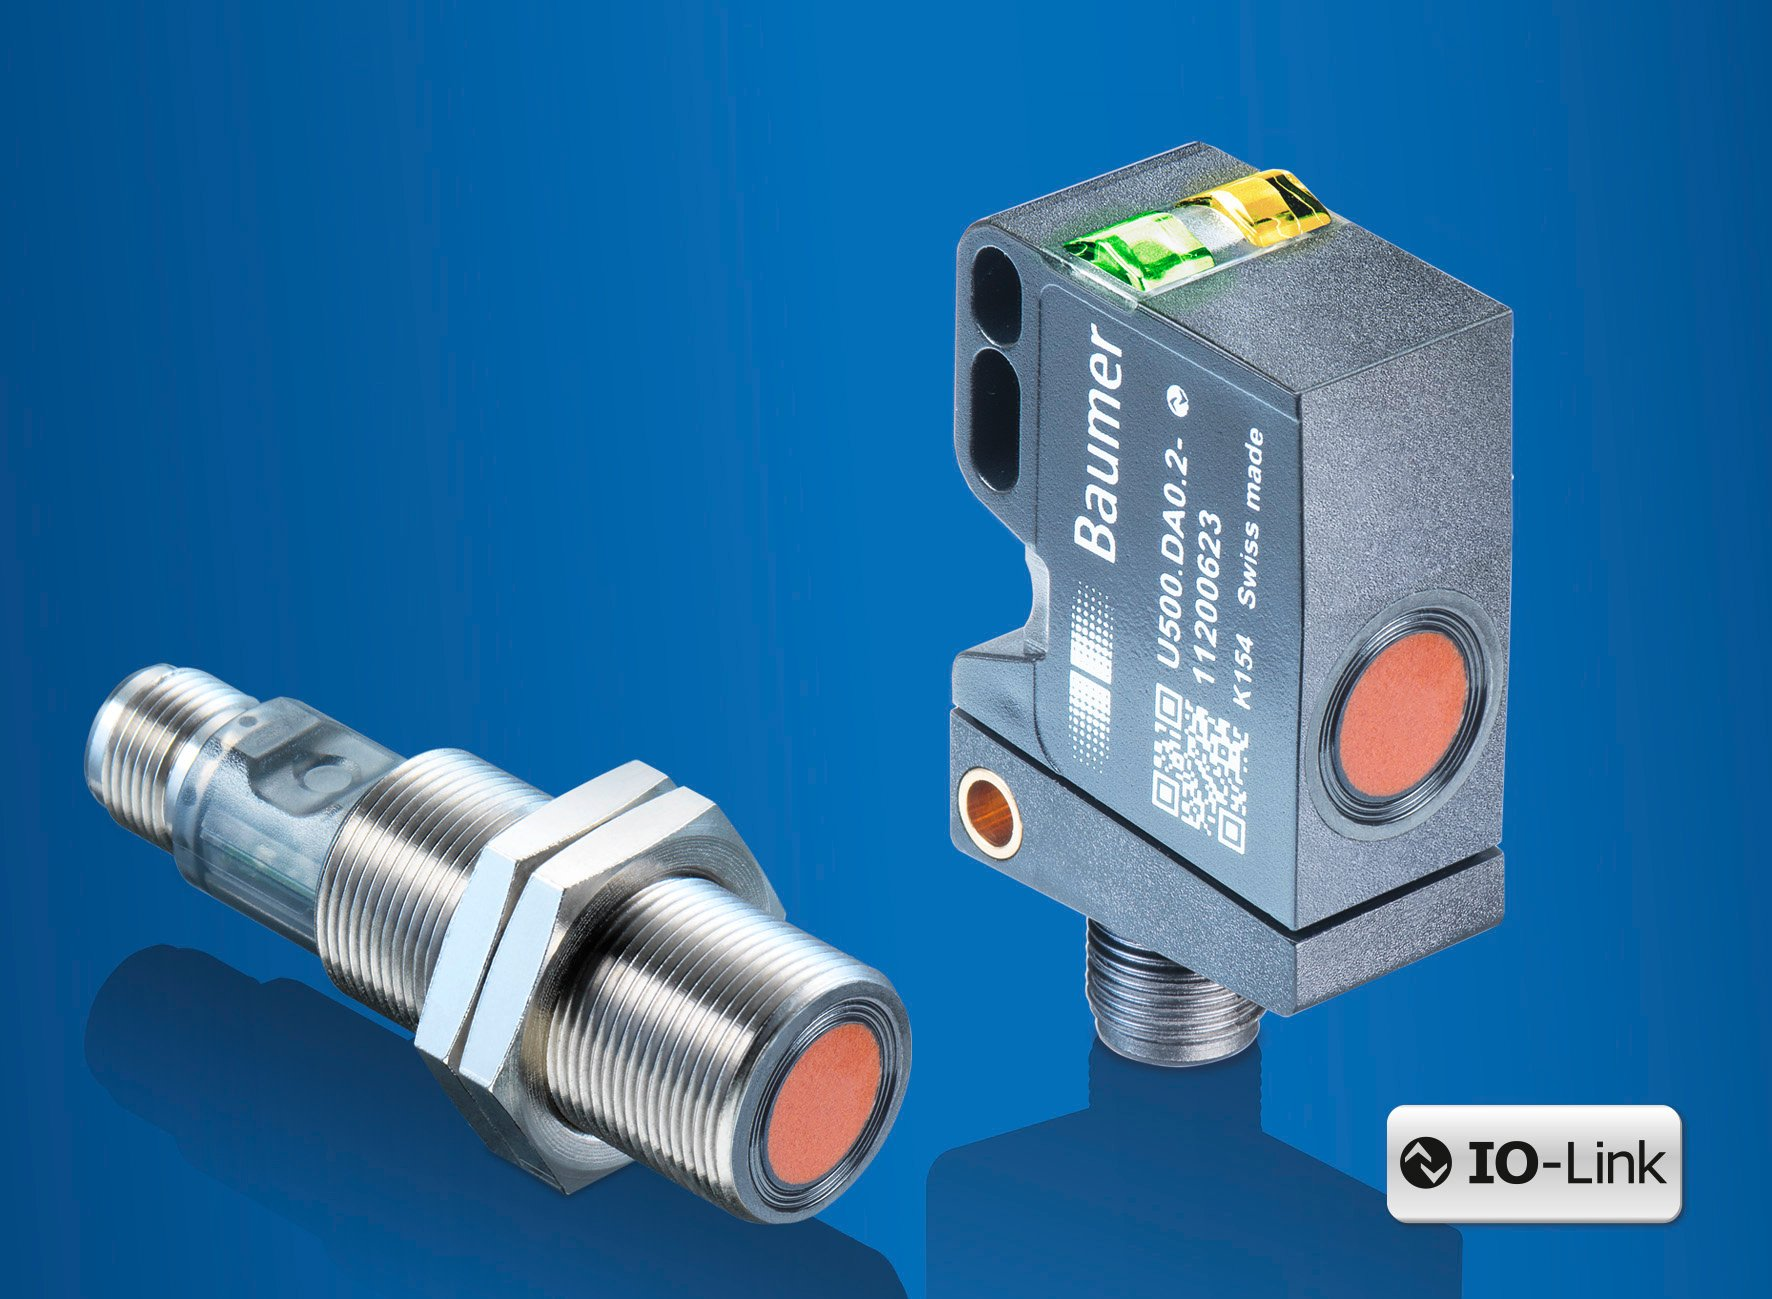 New ultrasonic sensors from Baumer outperform with robust housings